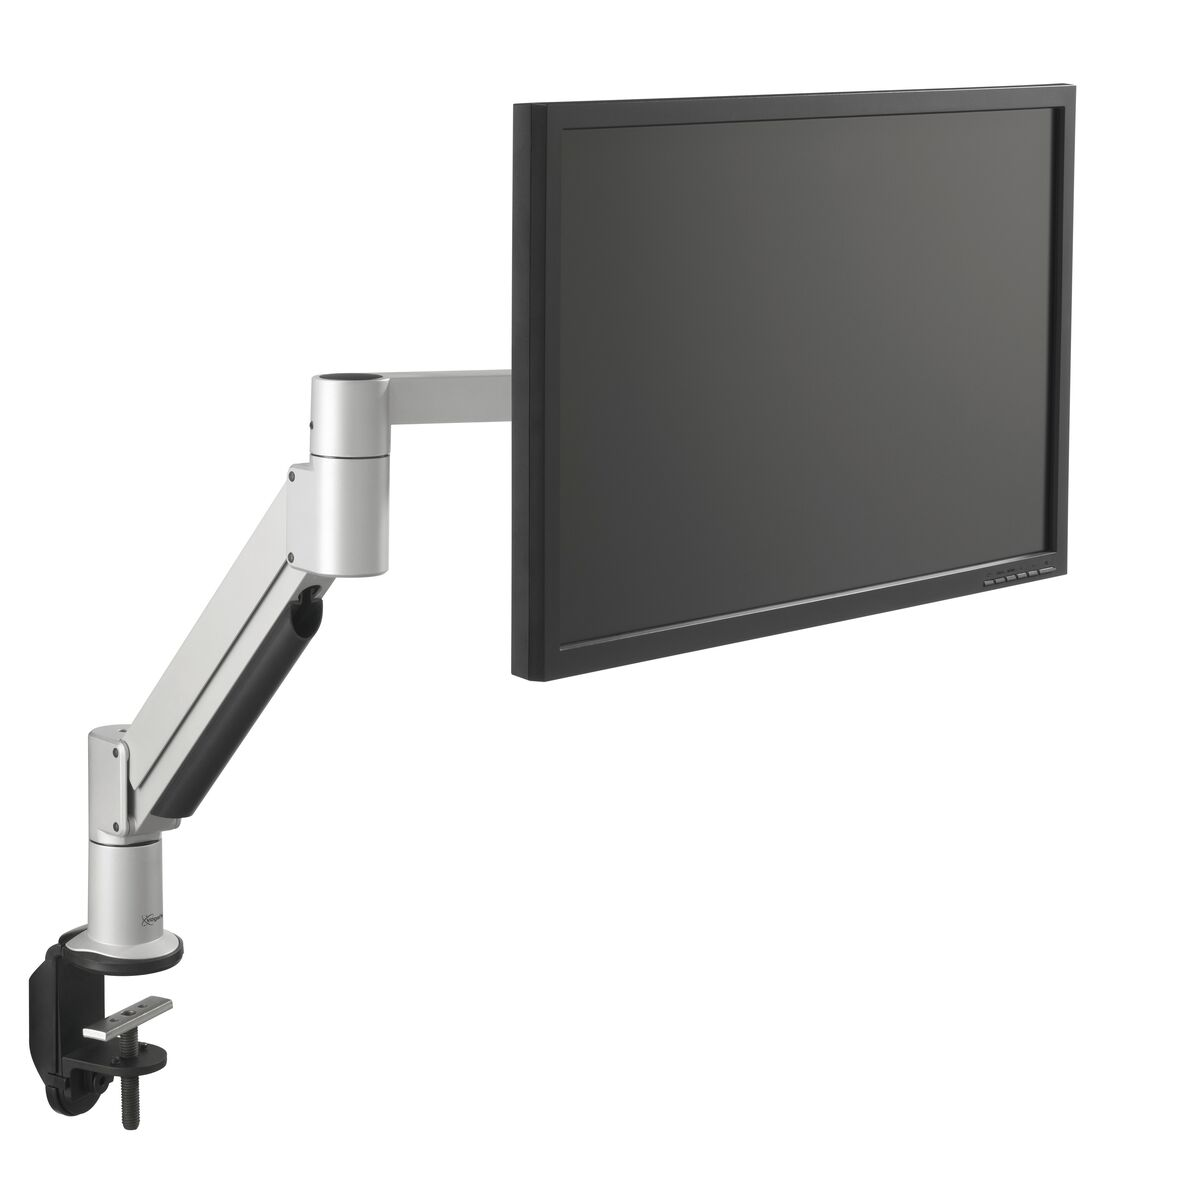 Monitor arm | Vogel's